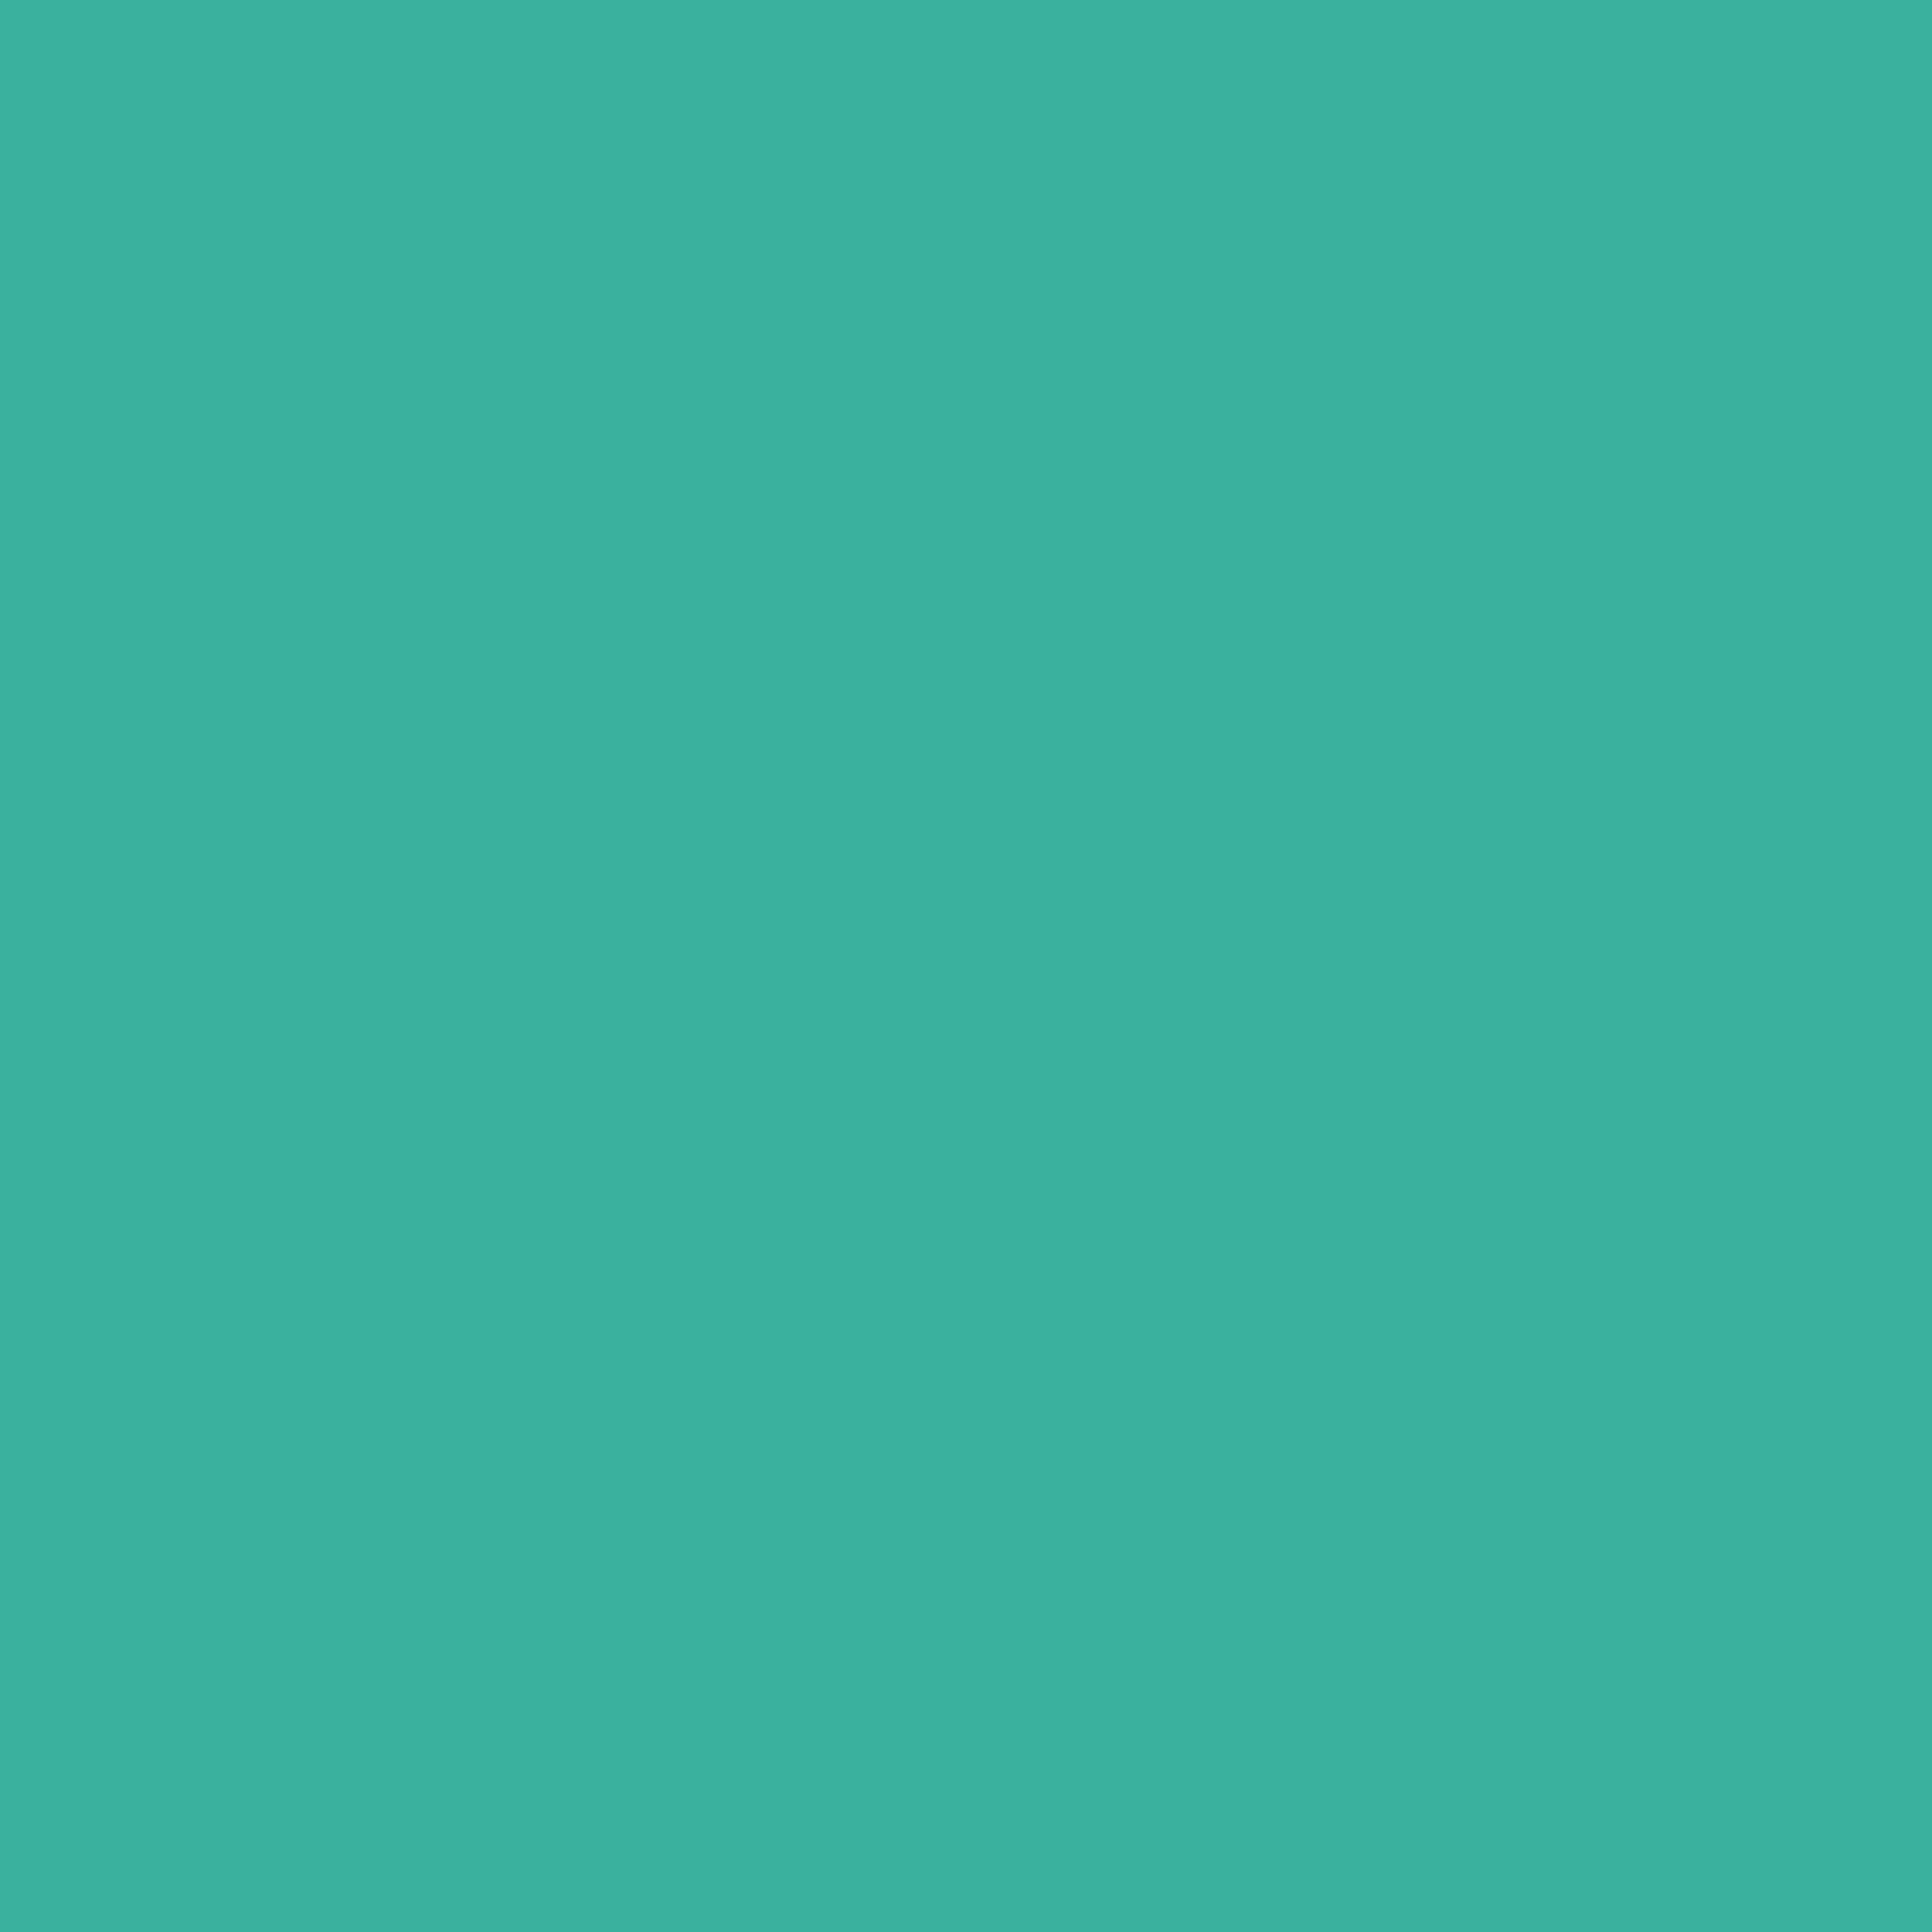 3600x3600 Keppel Solid Color Background